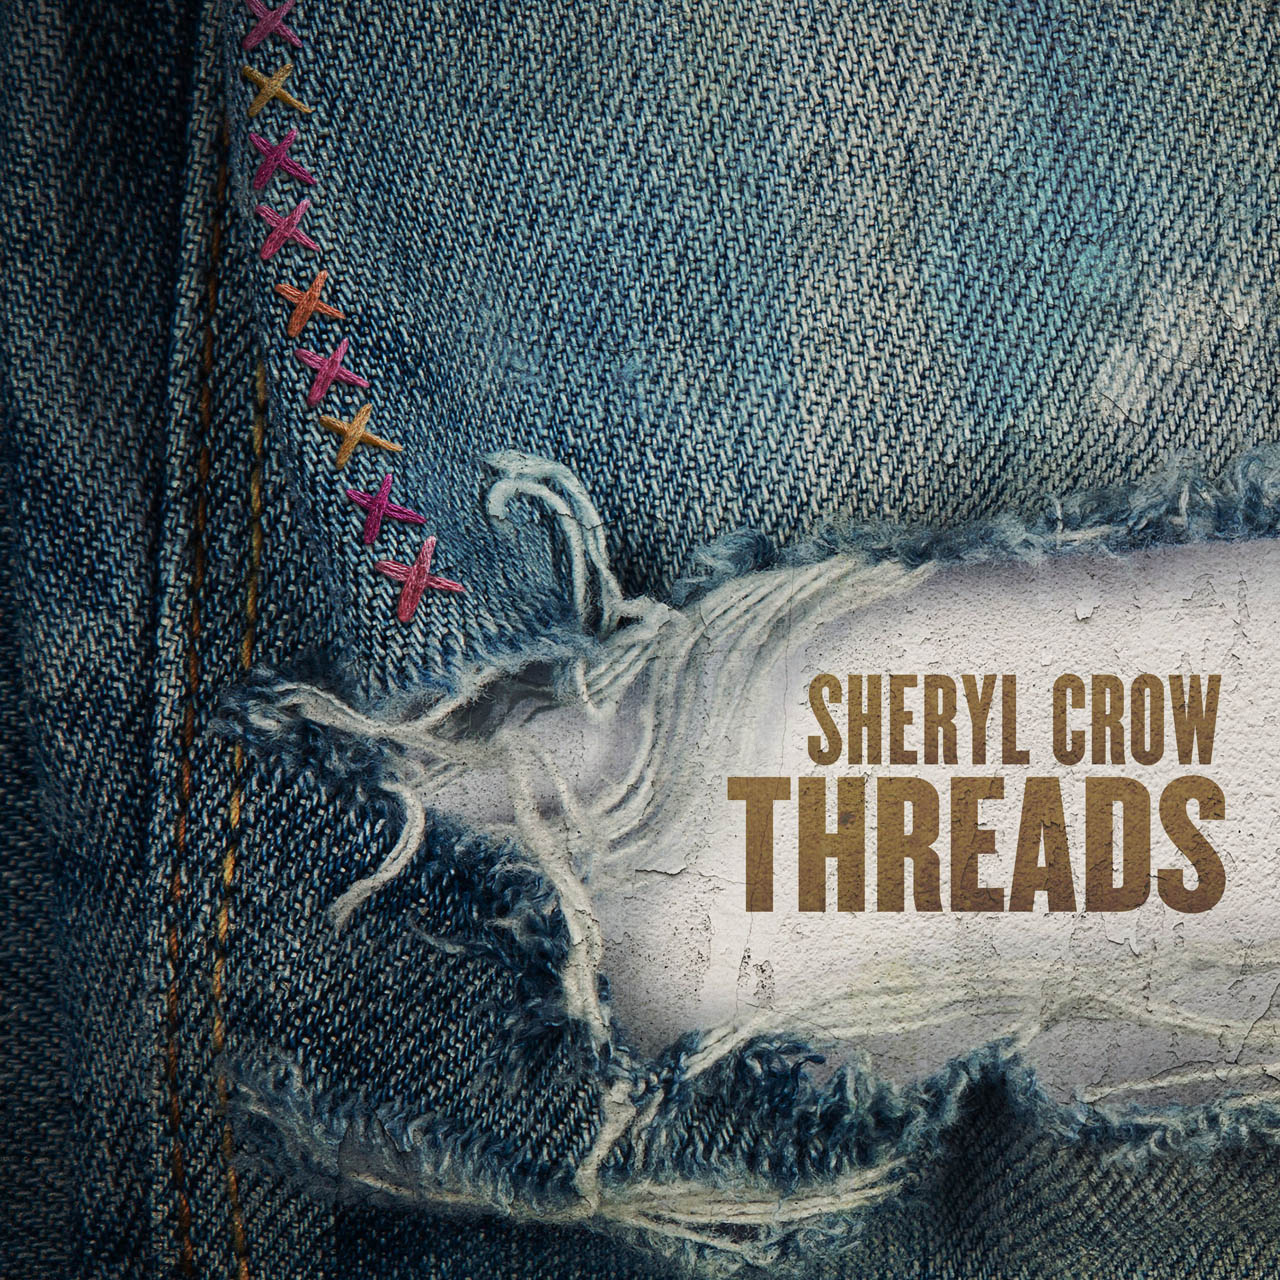 Sheryl Crow - Threads Album